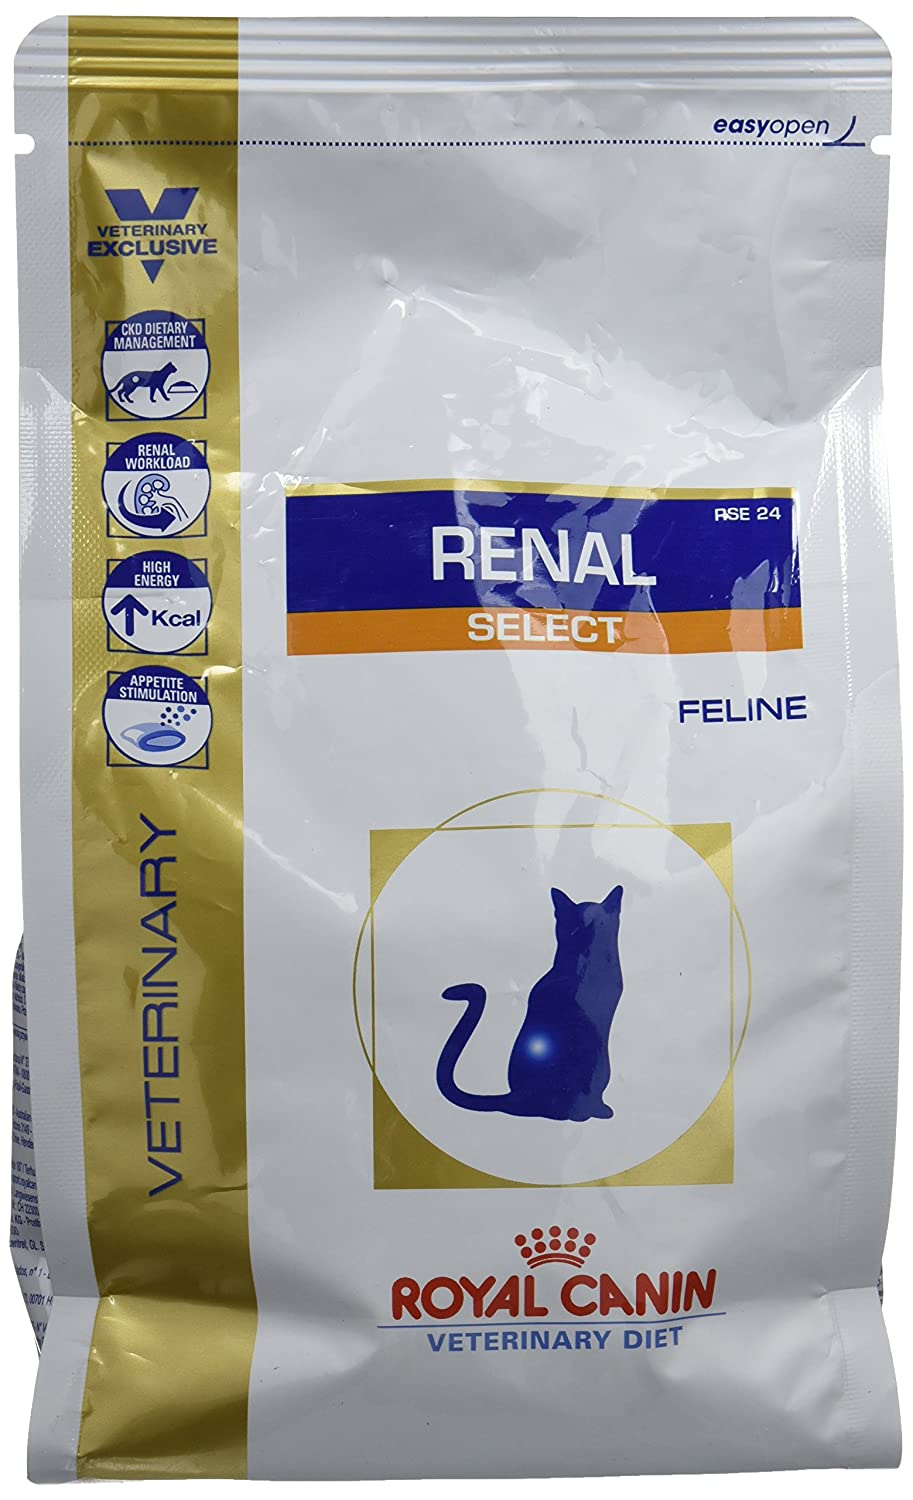 ROYAL CANIN Renal Select Comida para Gatos - 2000 gr: Amazon.es: Productos para mascotas